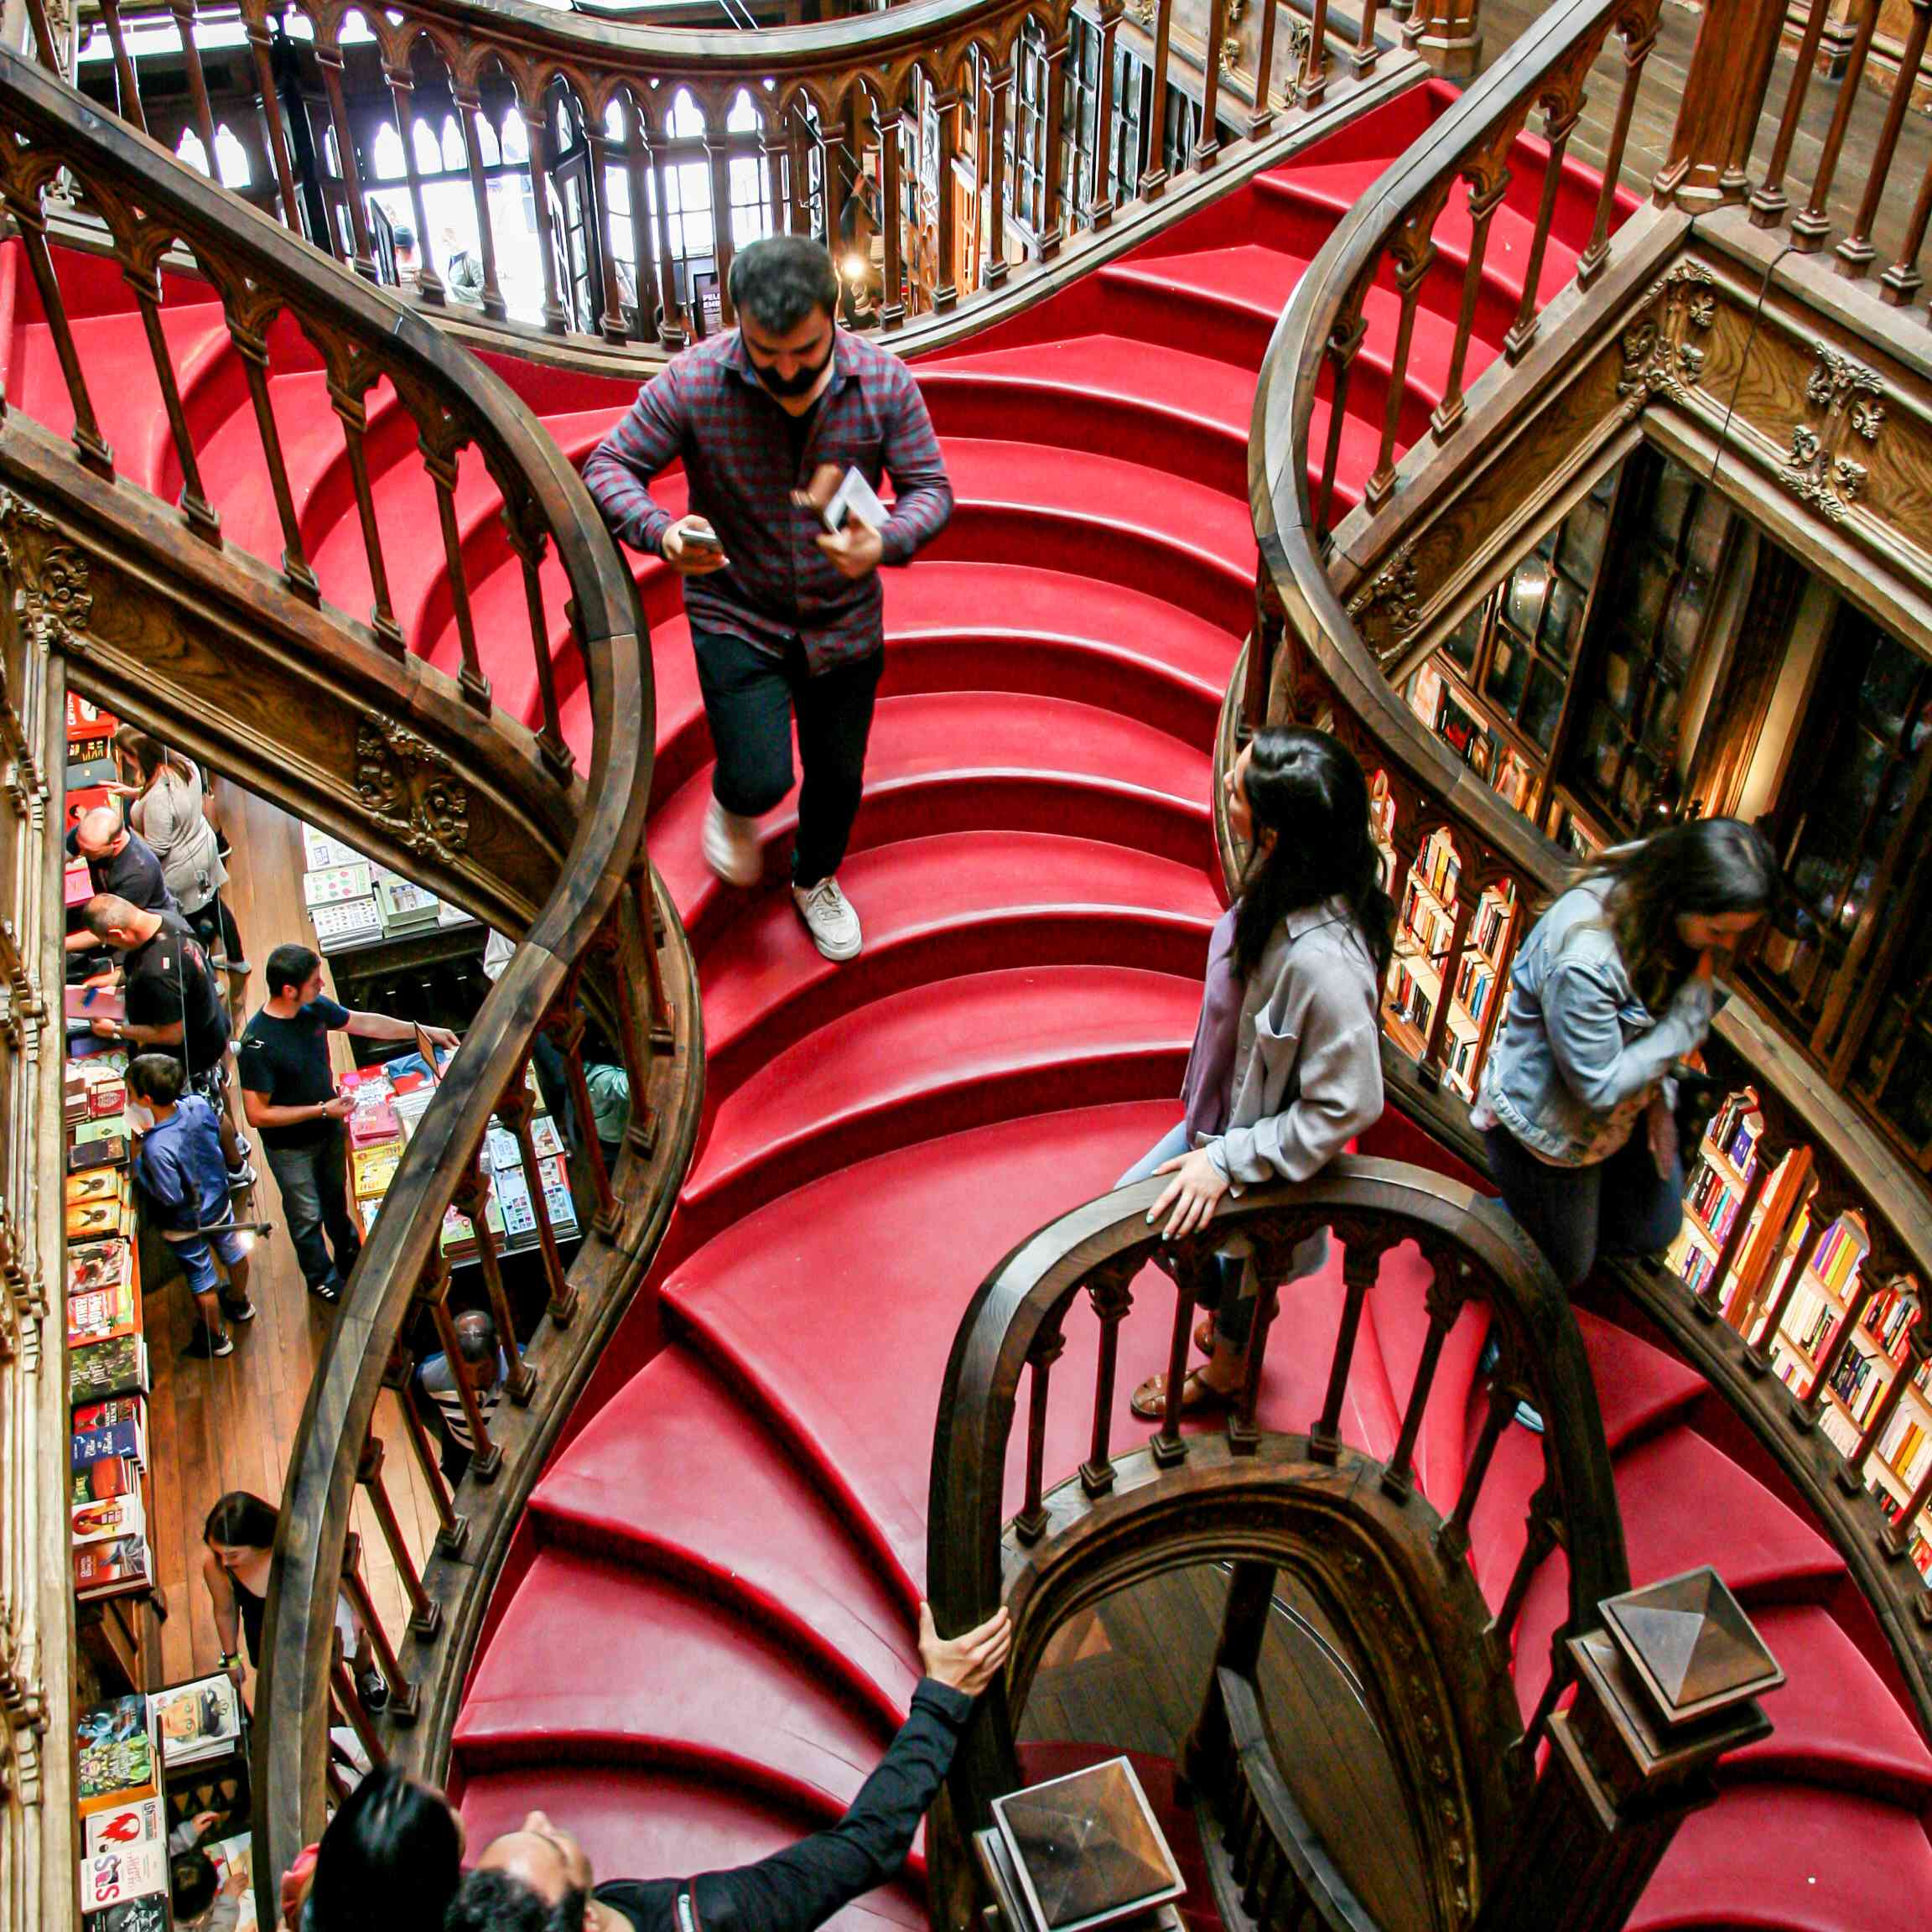 The famous stairwell in the Lello Bookstore